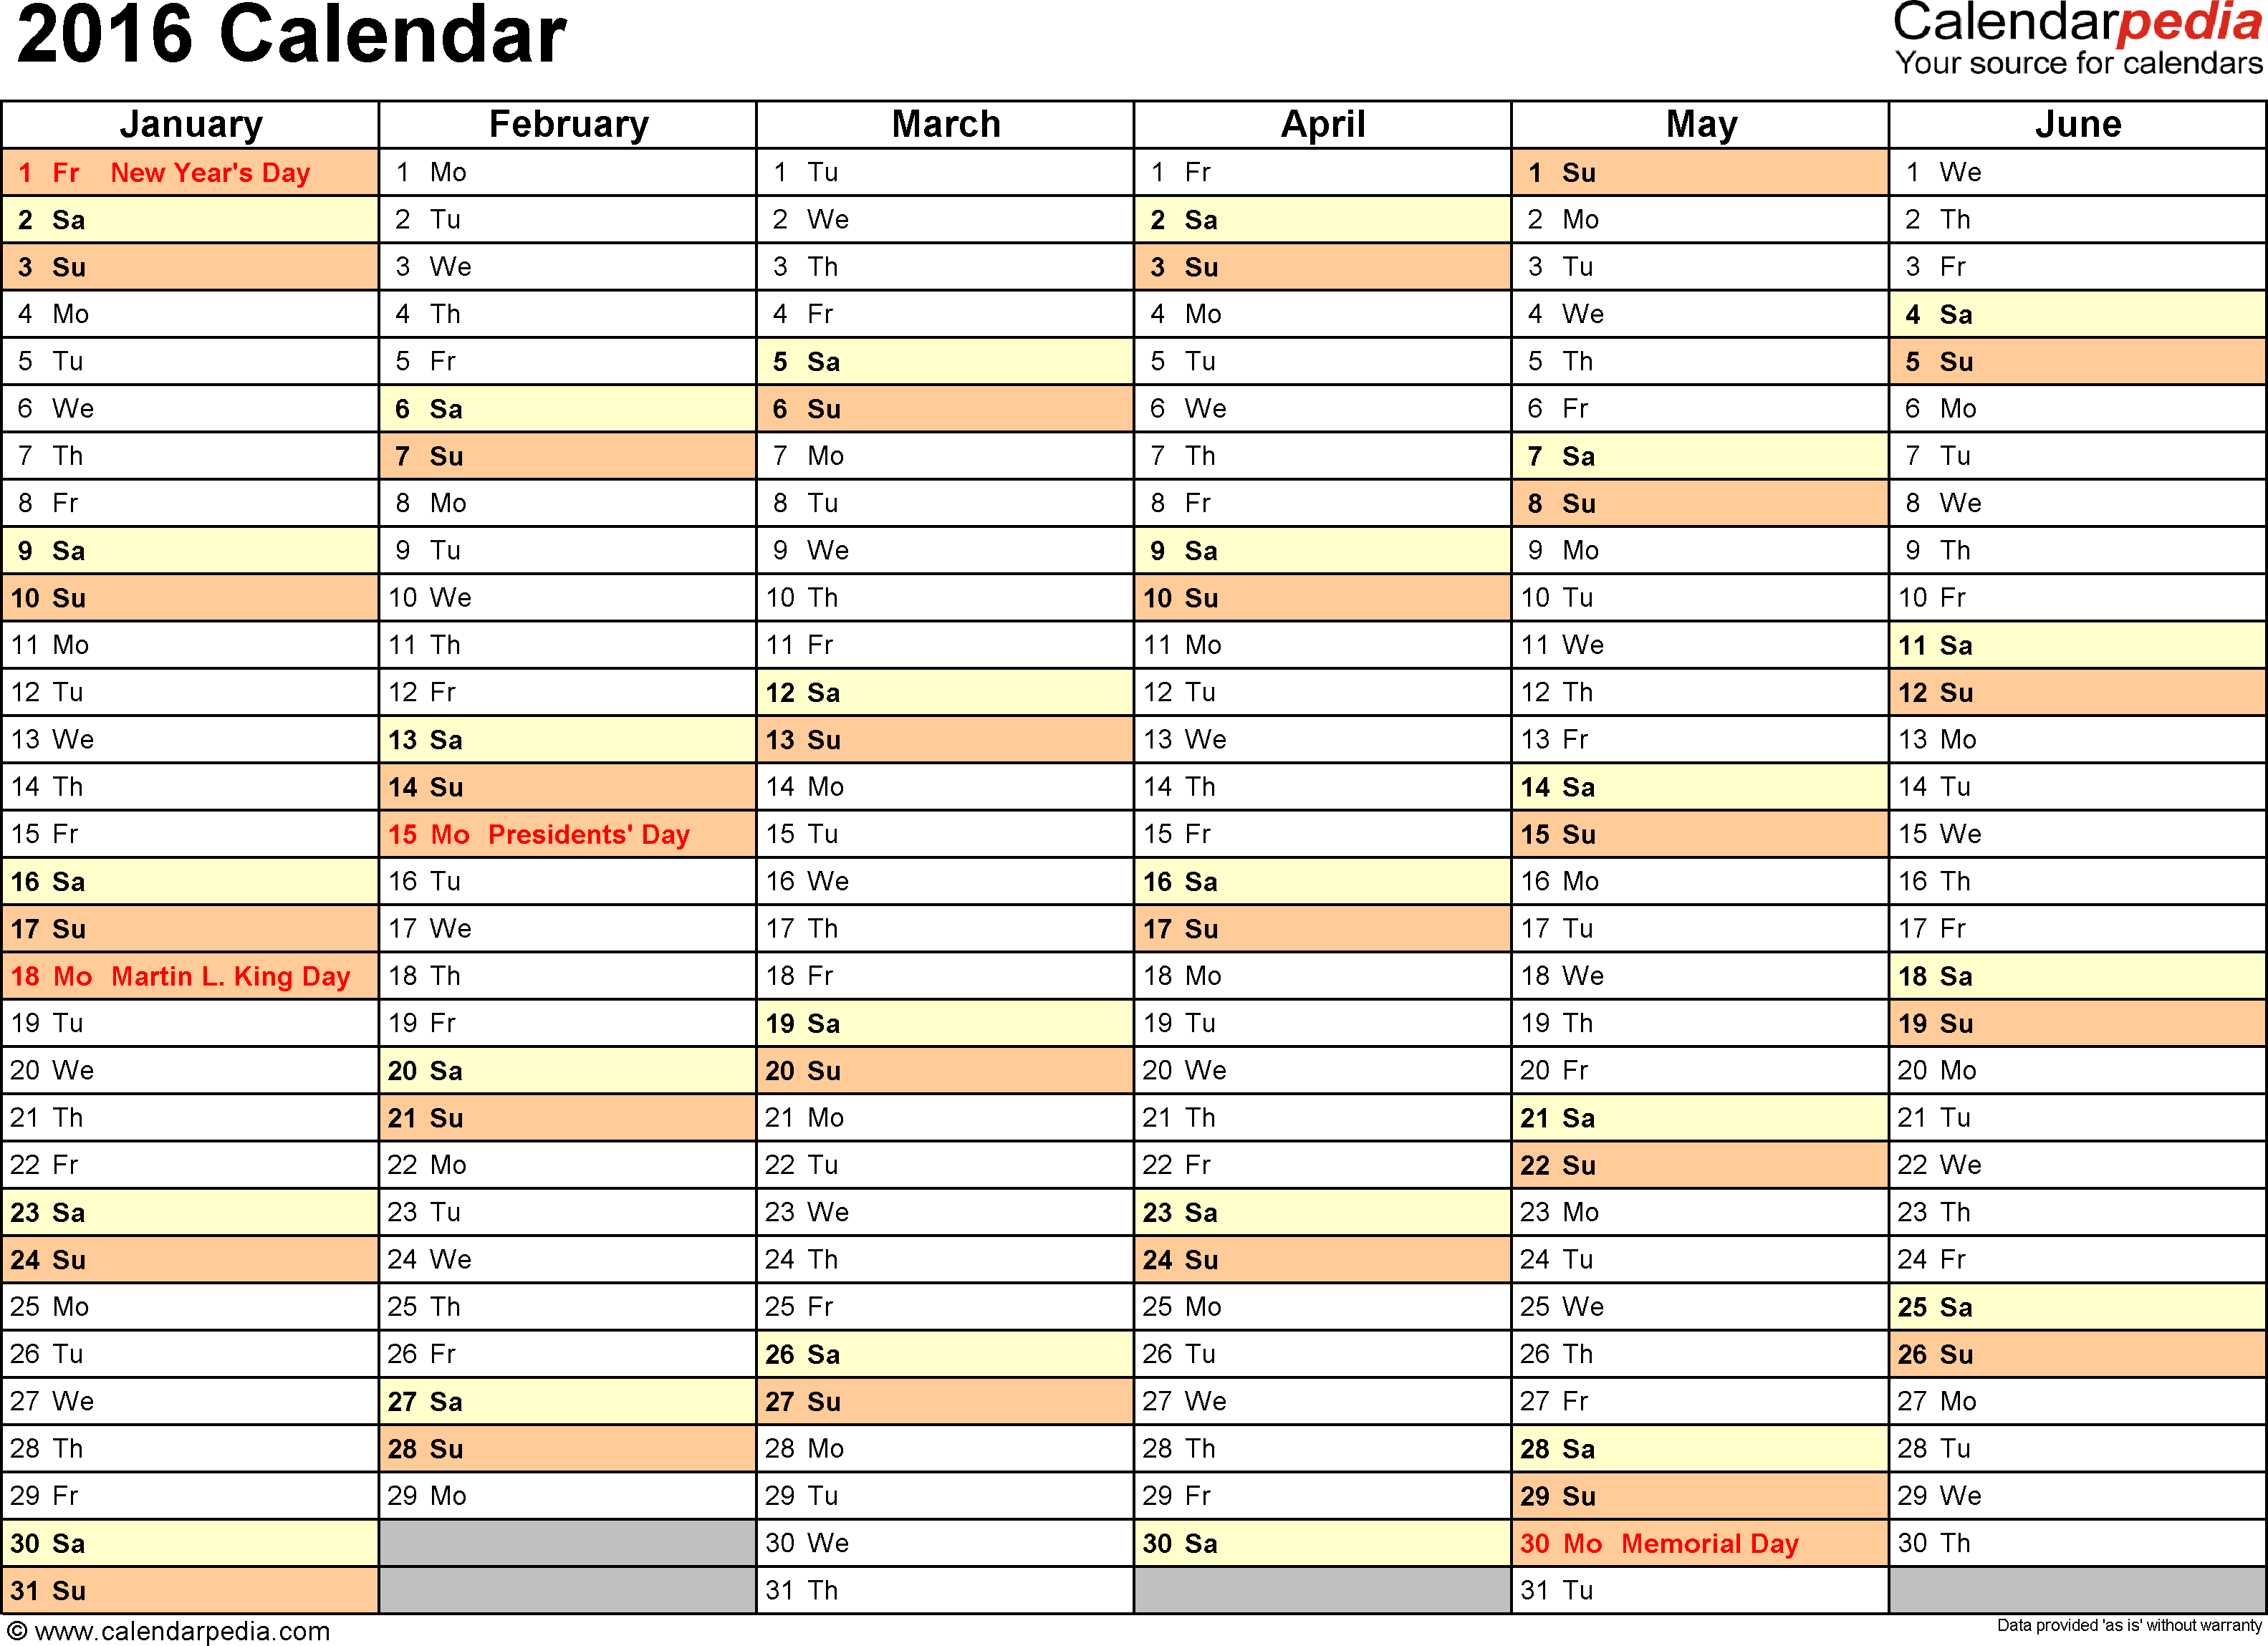 Ediblewildsus  Outstanding  Calendar  Download  Free Printable Excel Templates Xls With Gorgeous Template   Calendar For Excel Months Horizontally  Pages Landscape Orientation With Divine What Is A Worksheet In Excel Also How Do You Lock A Row In Excel In Addition Loan Amortization Excel Template And Excel Convert To Date As Well As Sumif Formula Excel Additionally Ctrl Excel From Calendarpediacom With Ediblewildsus  Gorgeous  Calendar  Download  Free Printable Excel Templates Xls With Divine Template   Calendar For Excel Months Horizontally  Pages Landscape Orientation And Outstanding What Is A Worksheet In Excel Also How Do You Lock A Row In Excel In Addition Loan Amortization Excel Template From Calendarpediacom